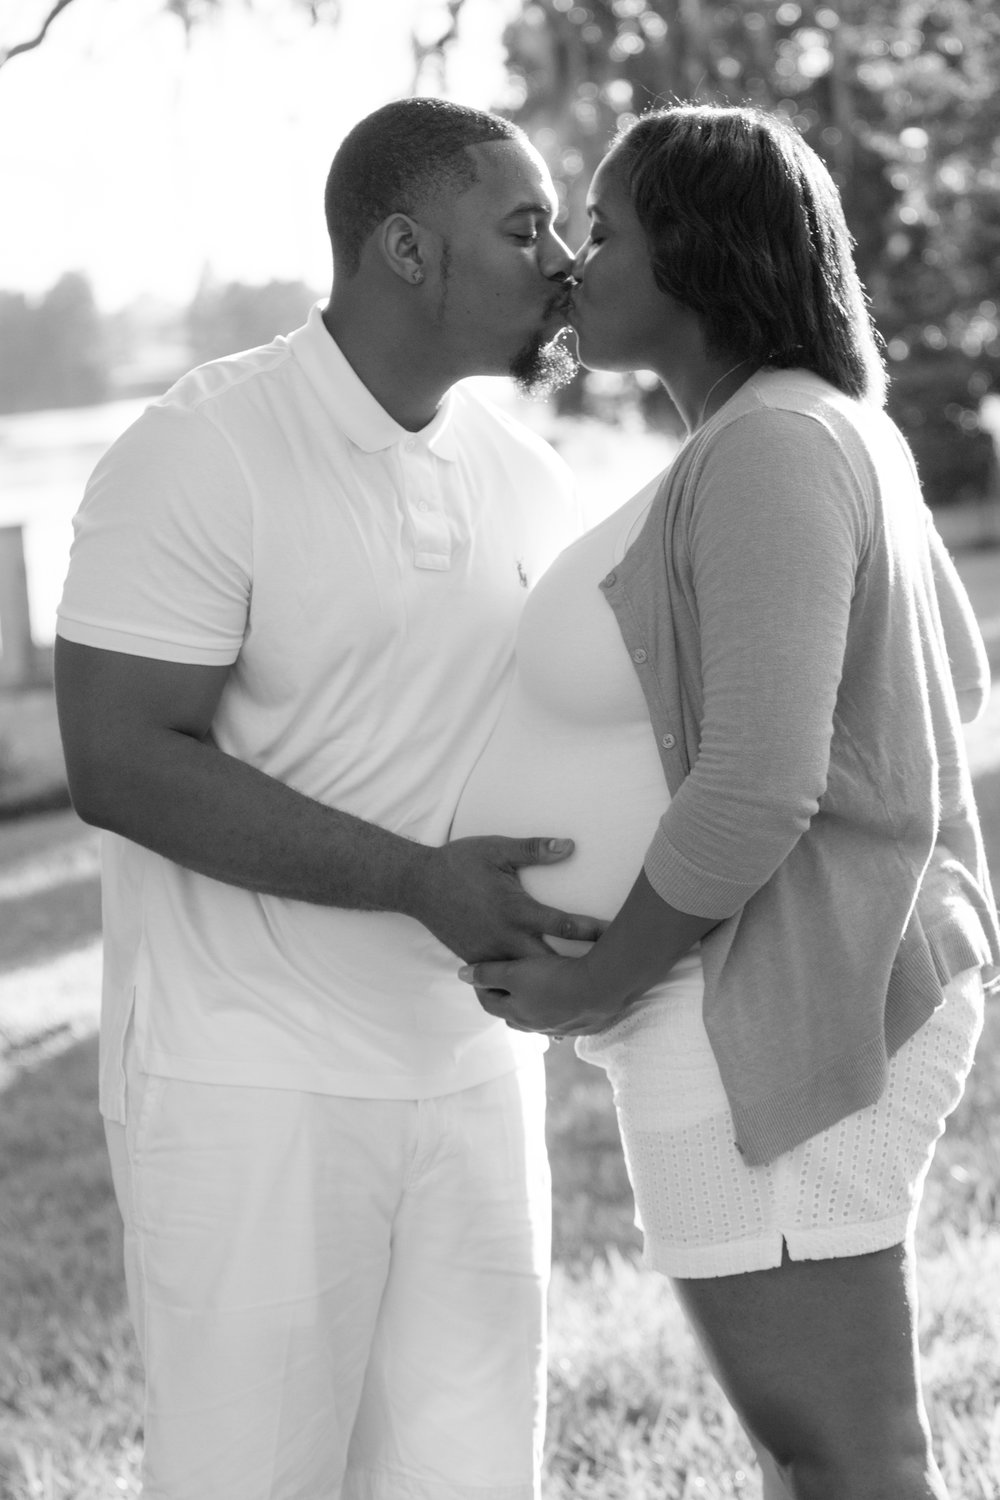 loch-haven-chamber-photography-maternity-shoot.jpg